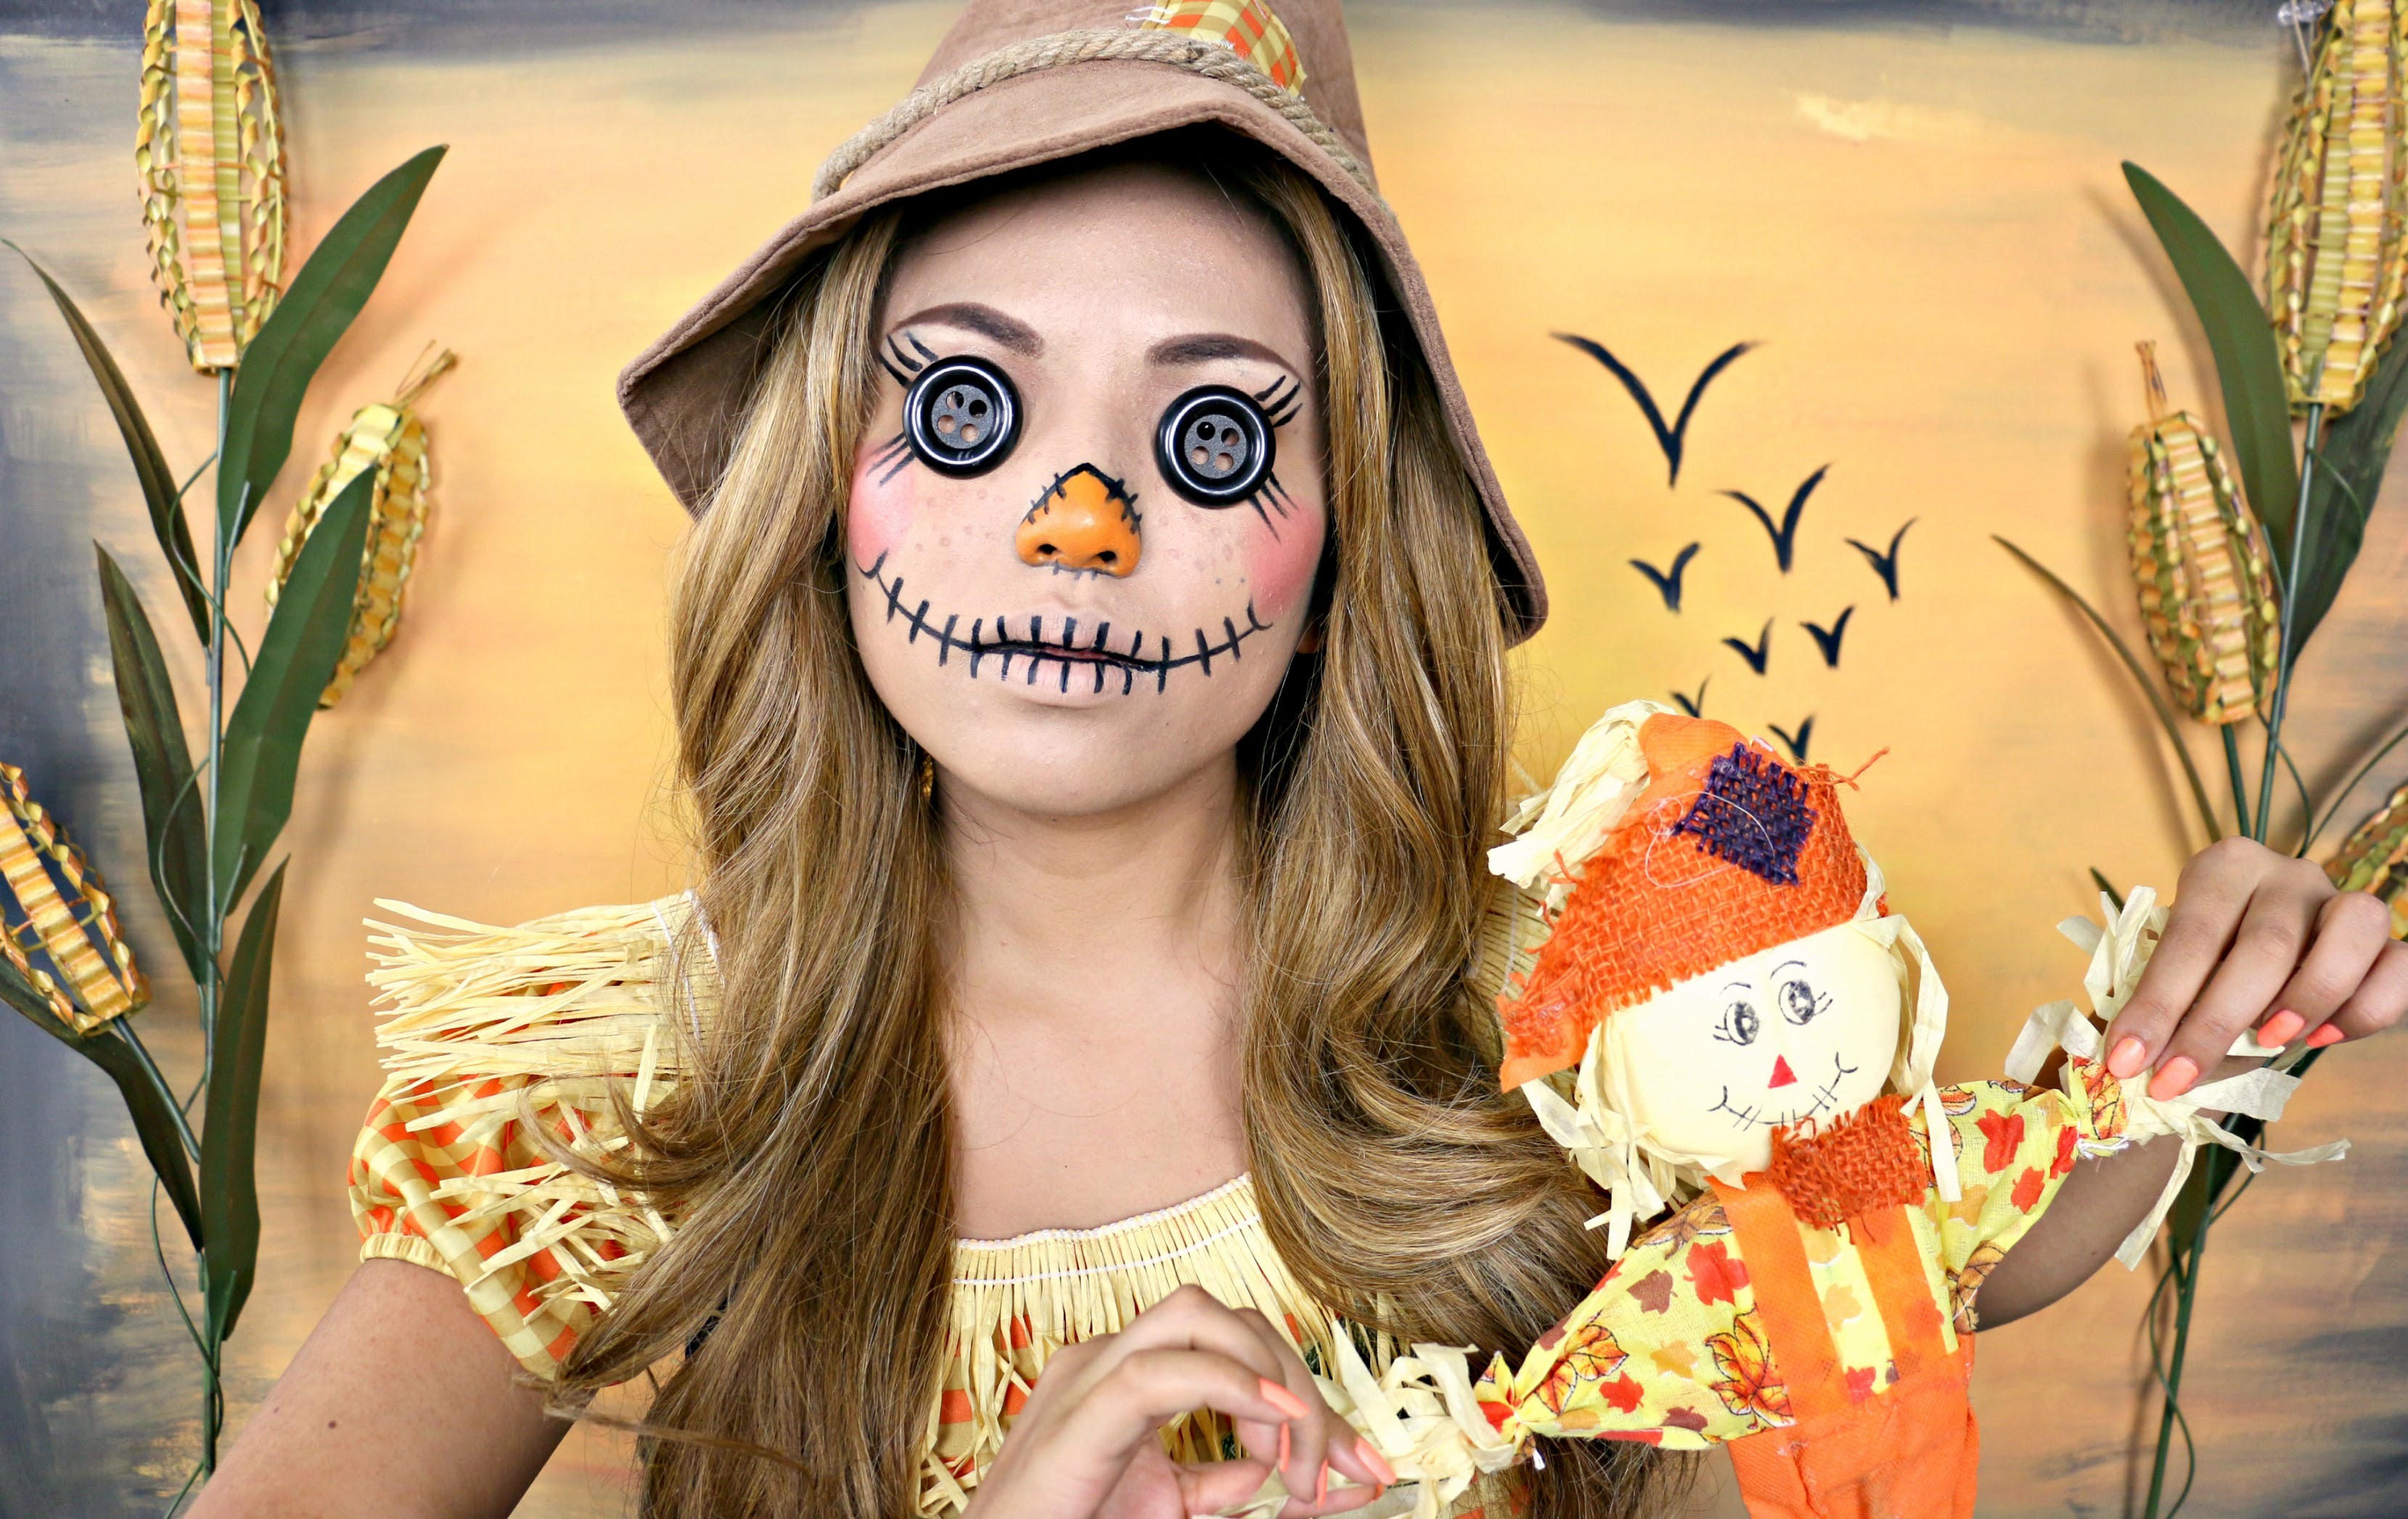 Best Halloween Scarecrow Makeup Pictures - harrop.us - harrop.us